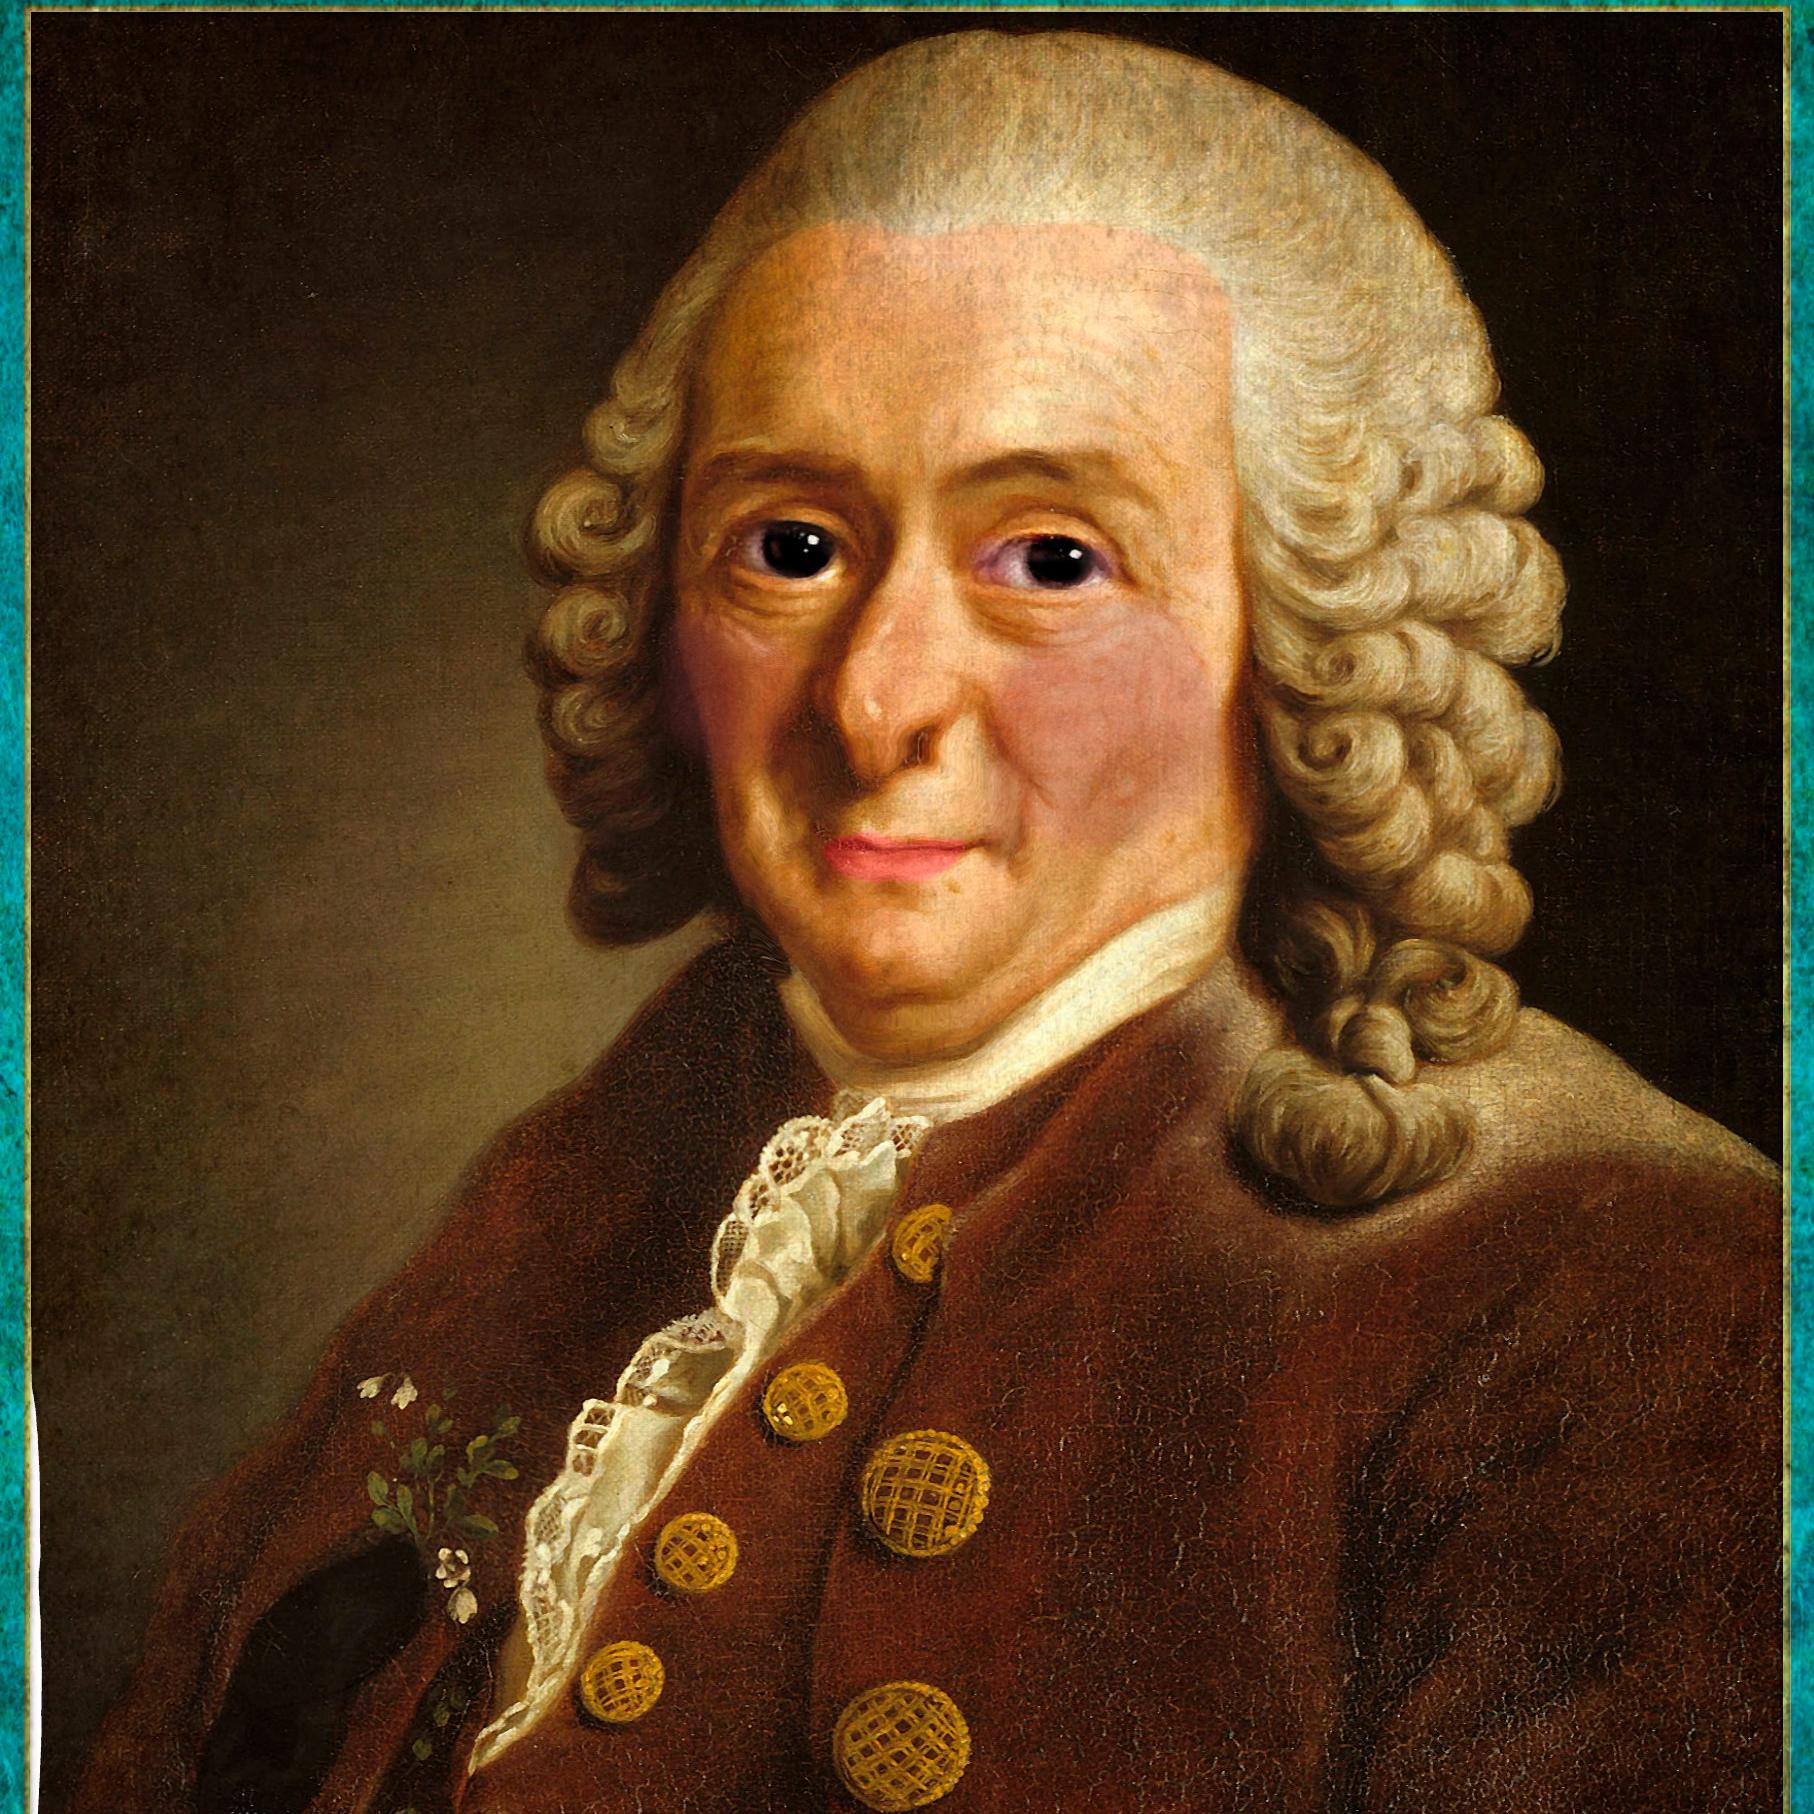 carolus linnaeus The flower expert - flowers encyclopedia speaks about carl linnaeus the  flower expert also highlights carl linnaeuscontributions to the world of botany  and.